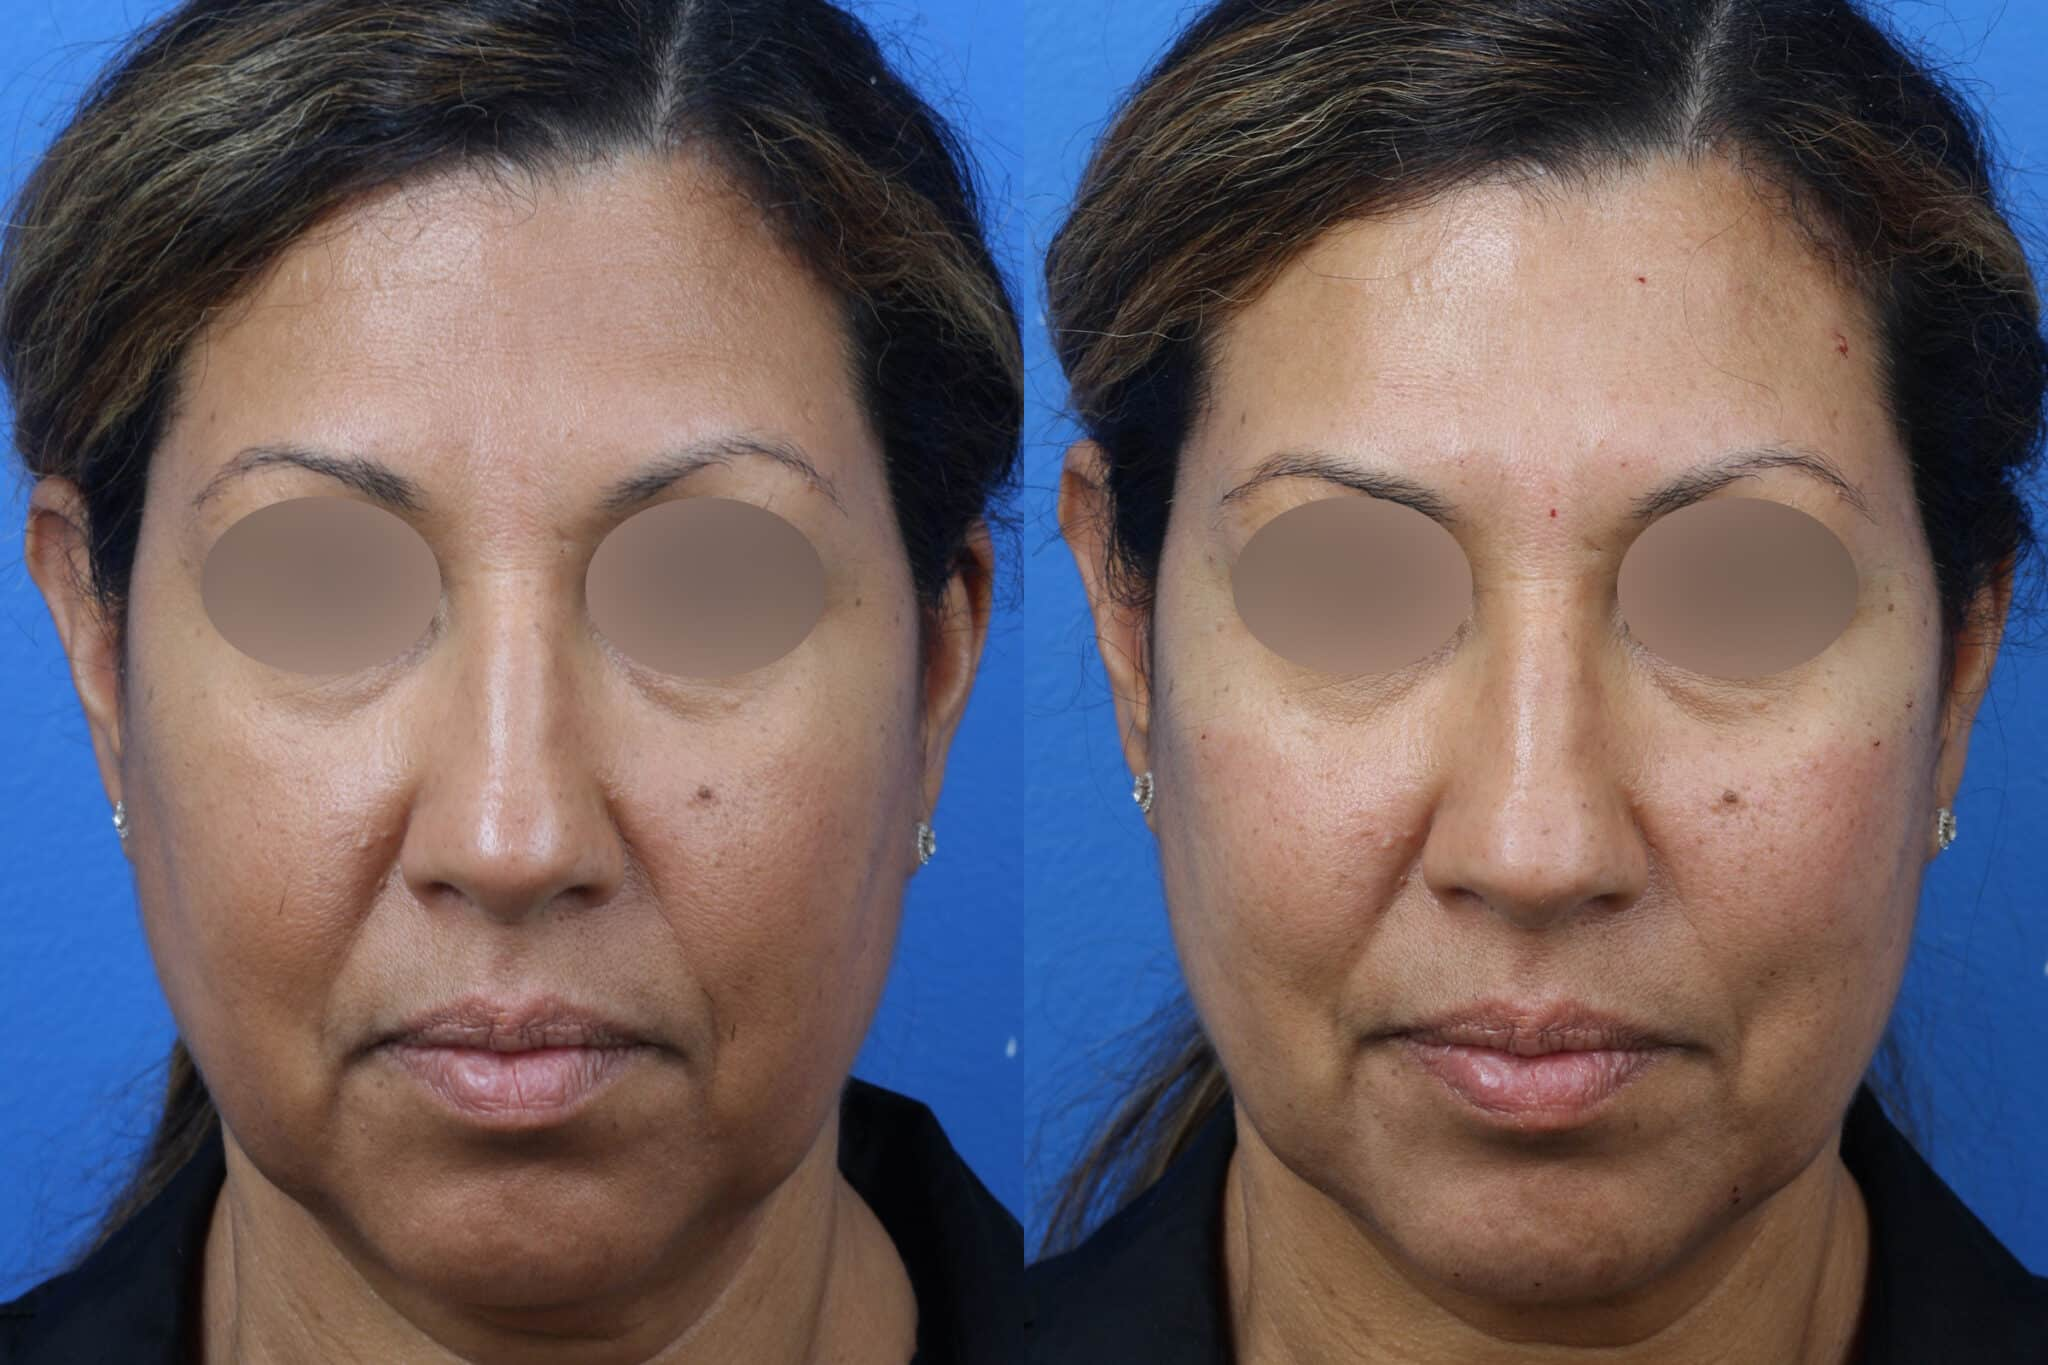 Cheek Filler to Augment the Cheeks of a Female Patient by Dr. Miller